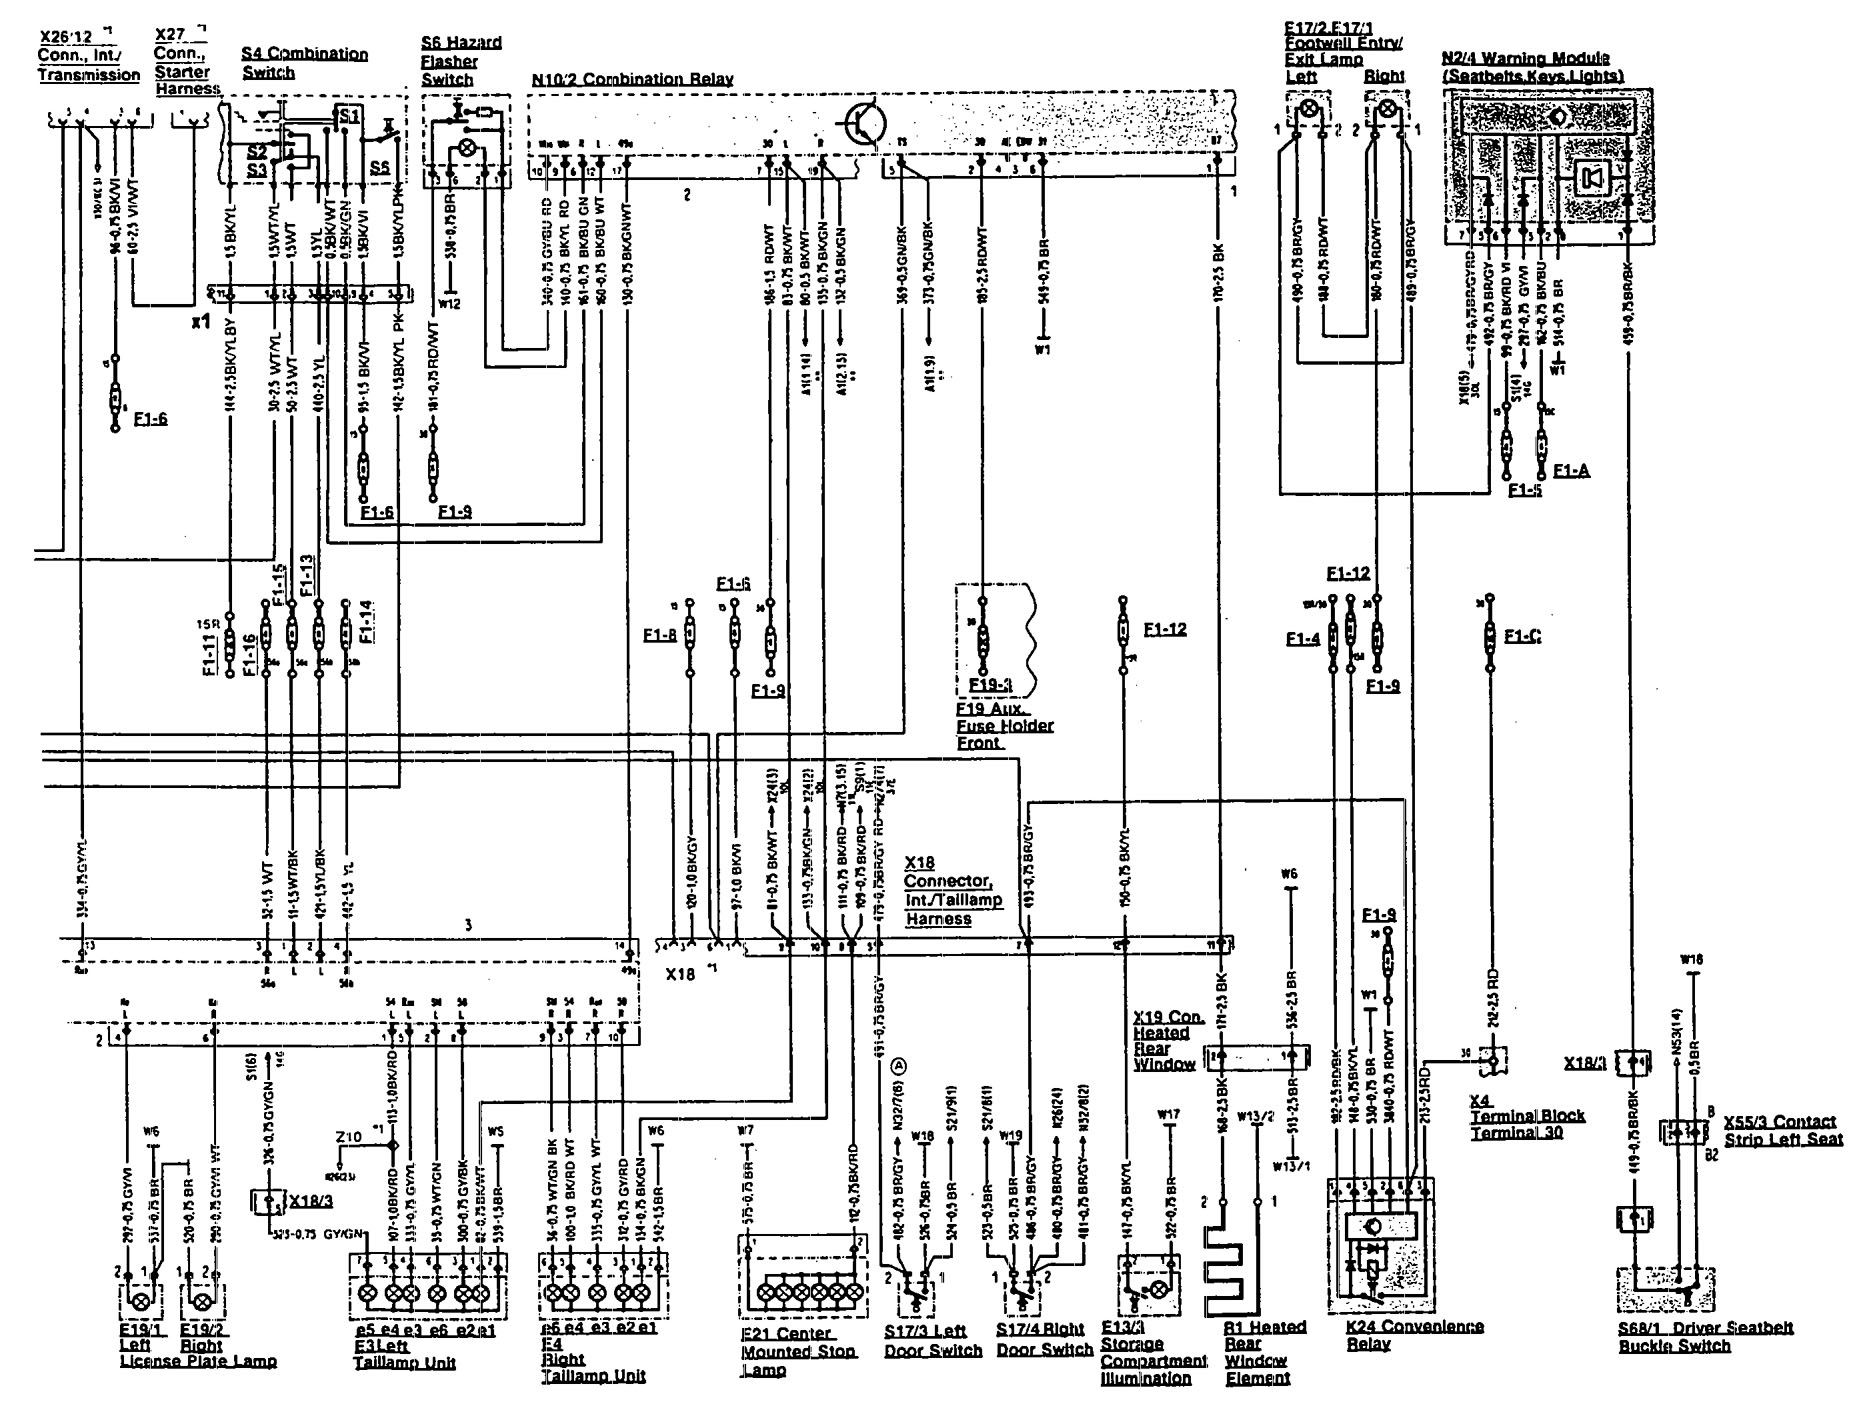 Wiring Diagram For W460 Mercedes